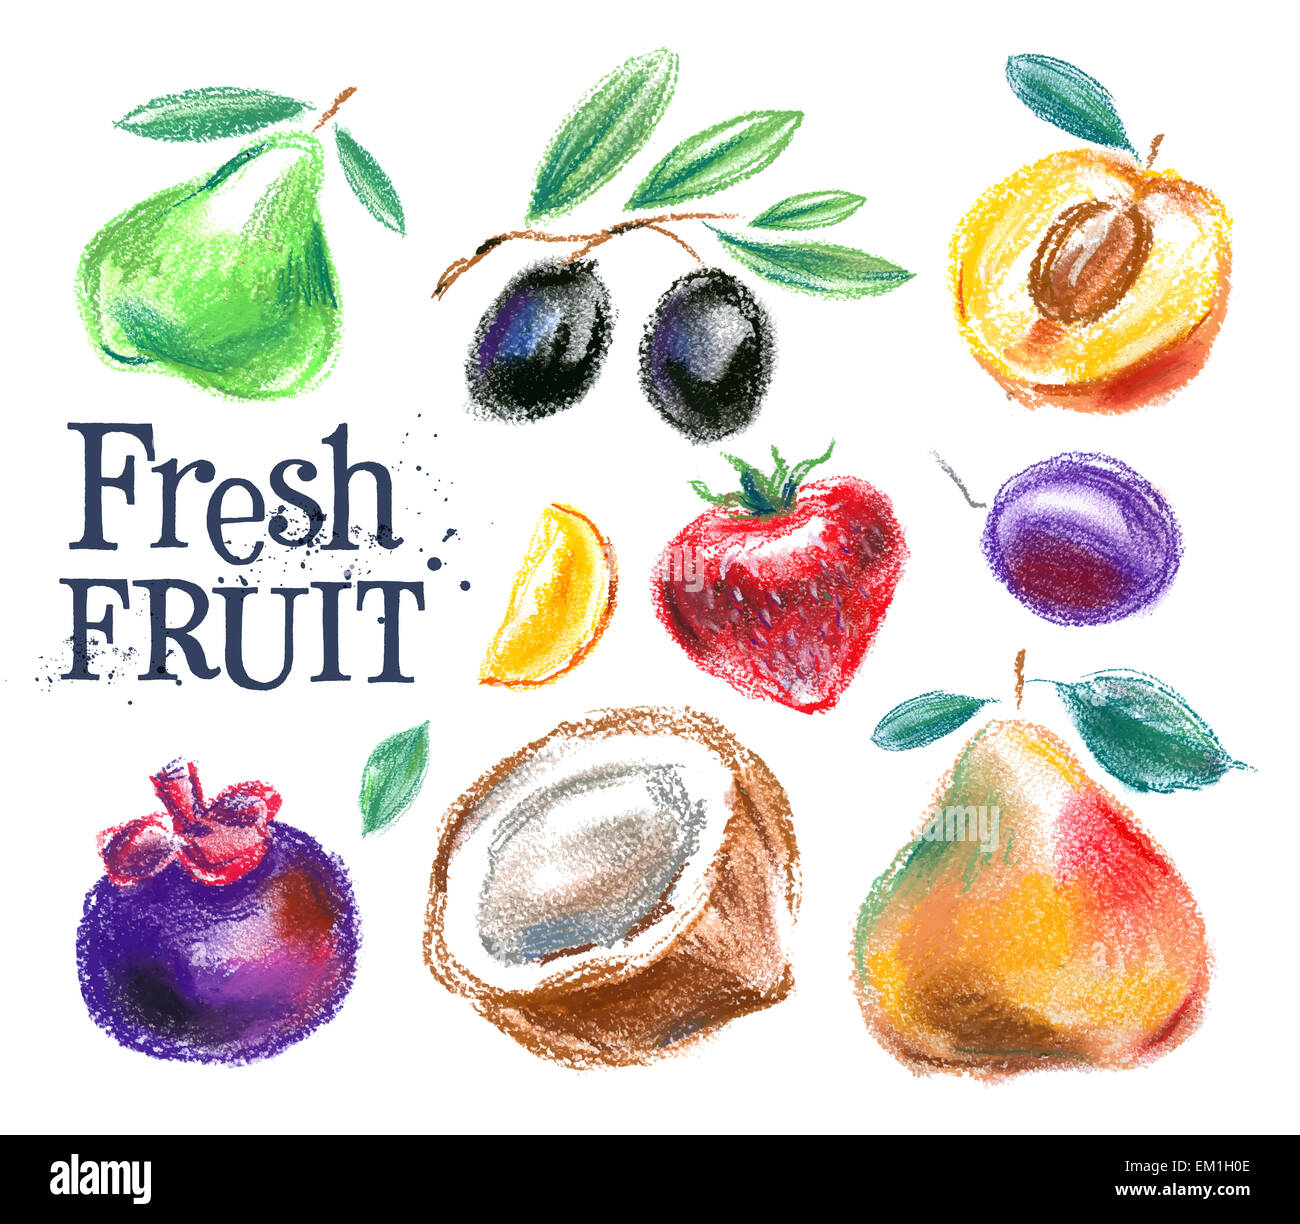 fruit vector logo design template. food or harvest icon. - Stock Image